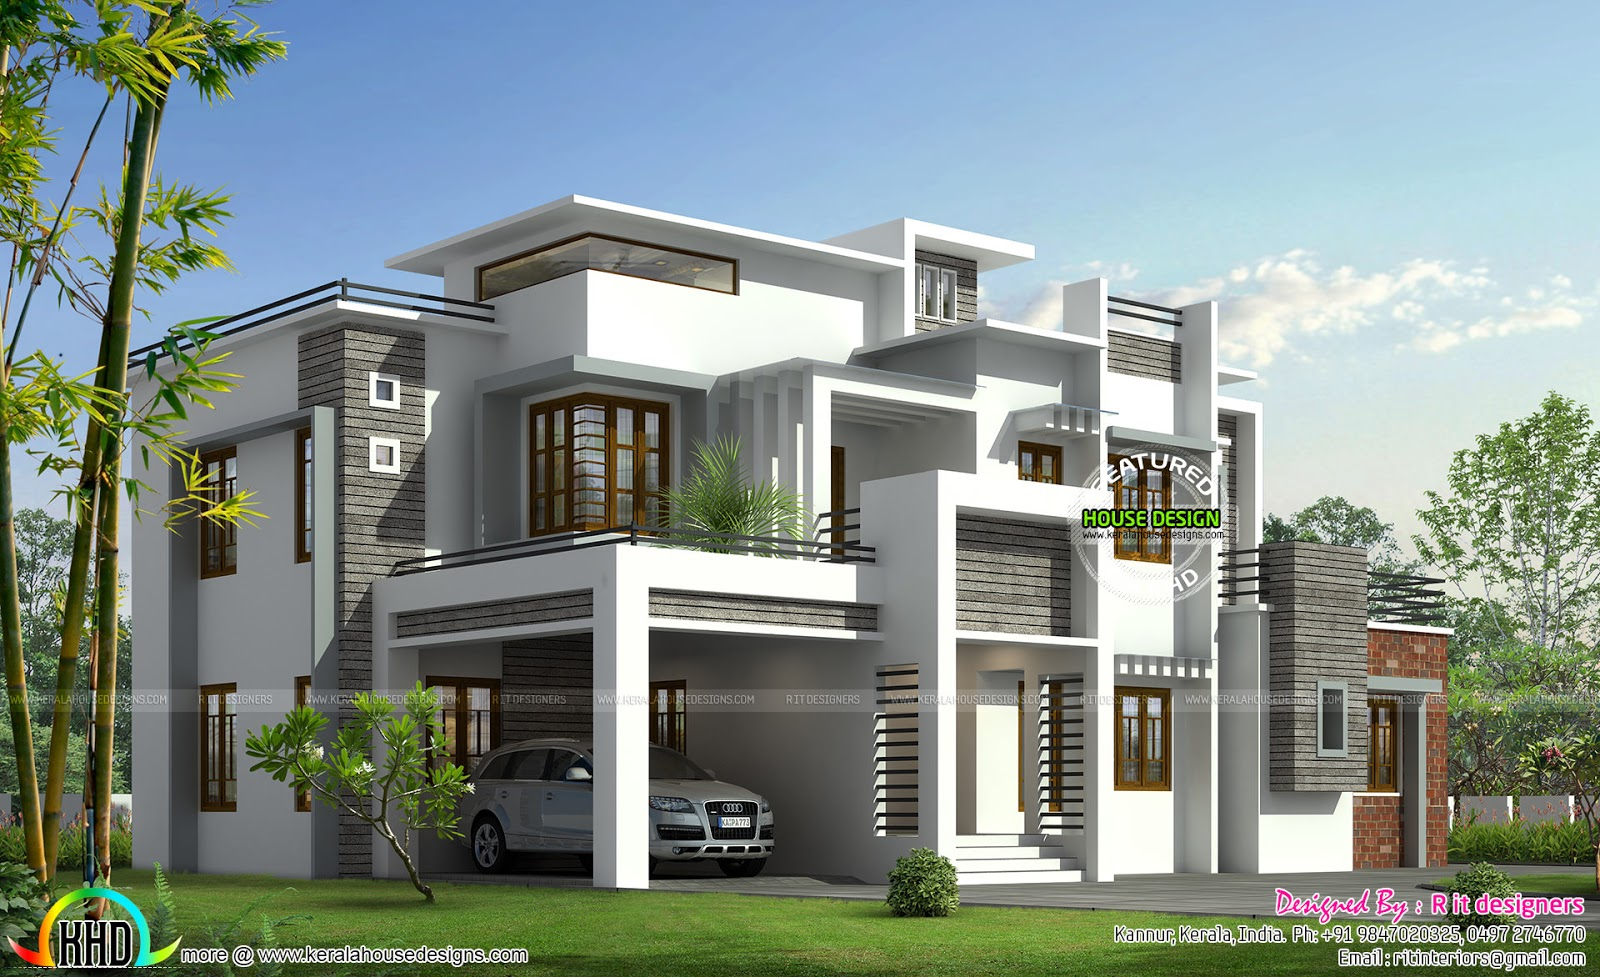 Box model contemporary house kerala home design and for Latest kerala model house plans